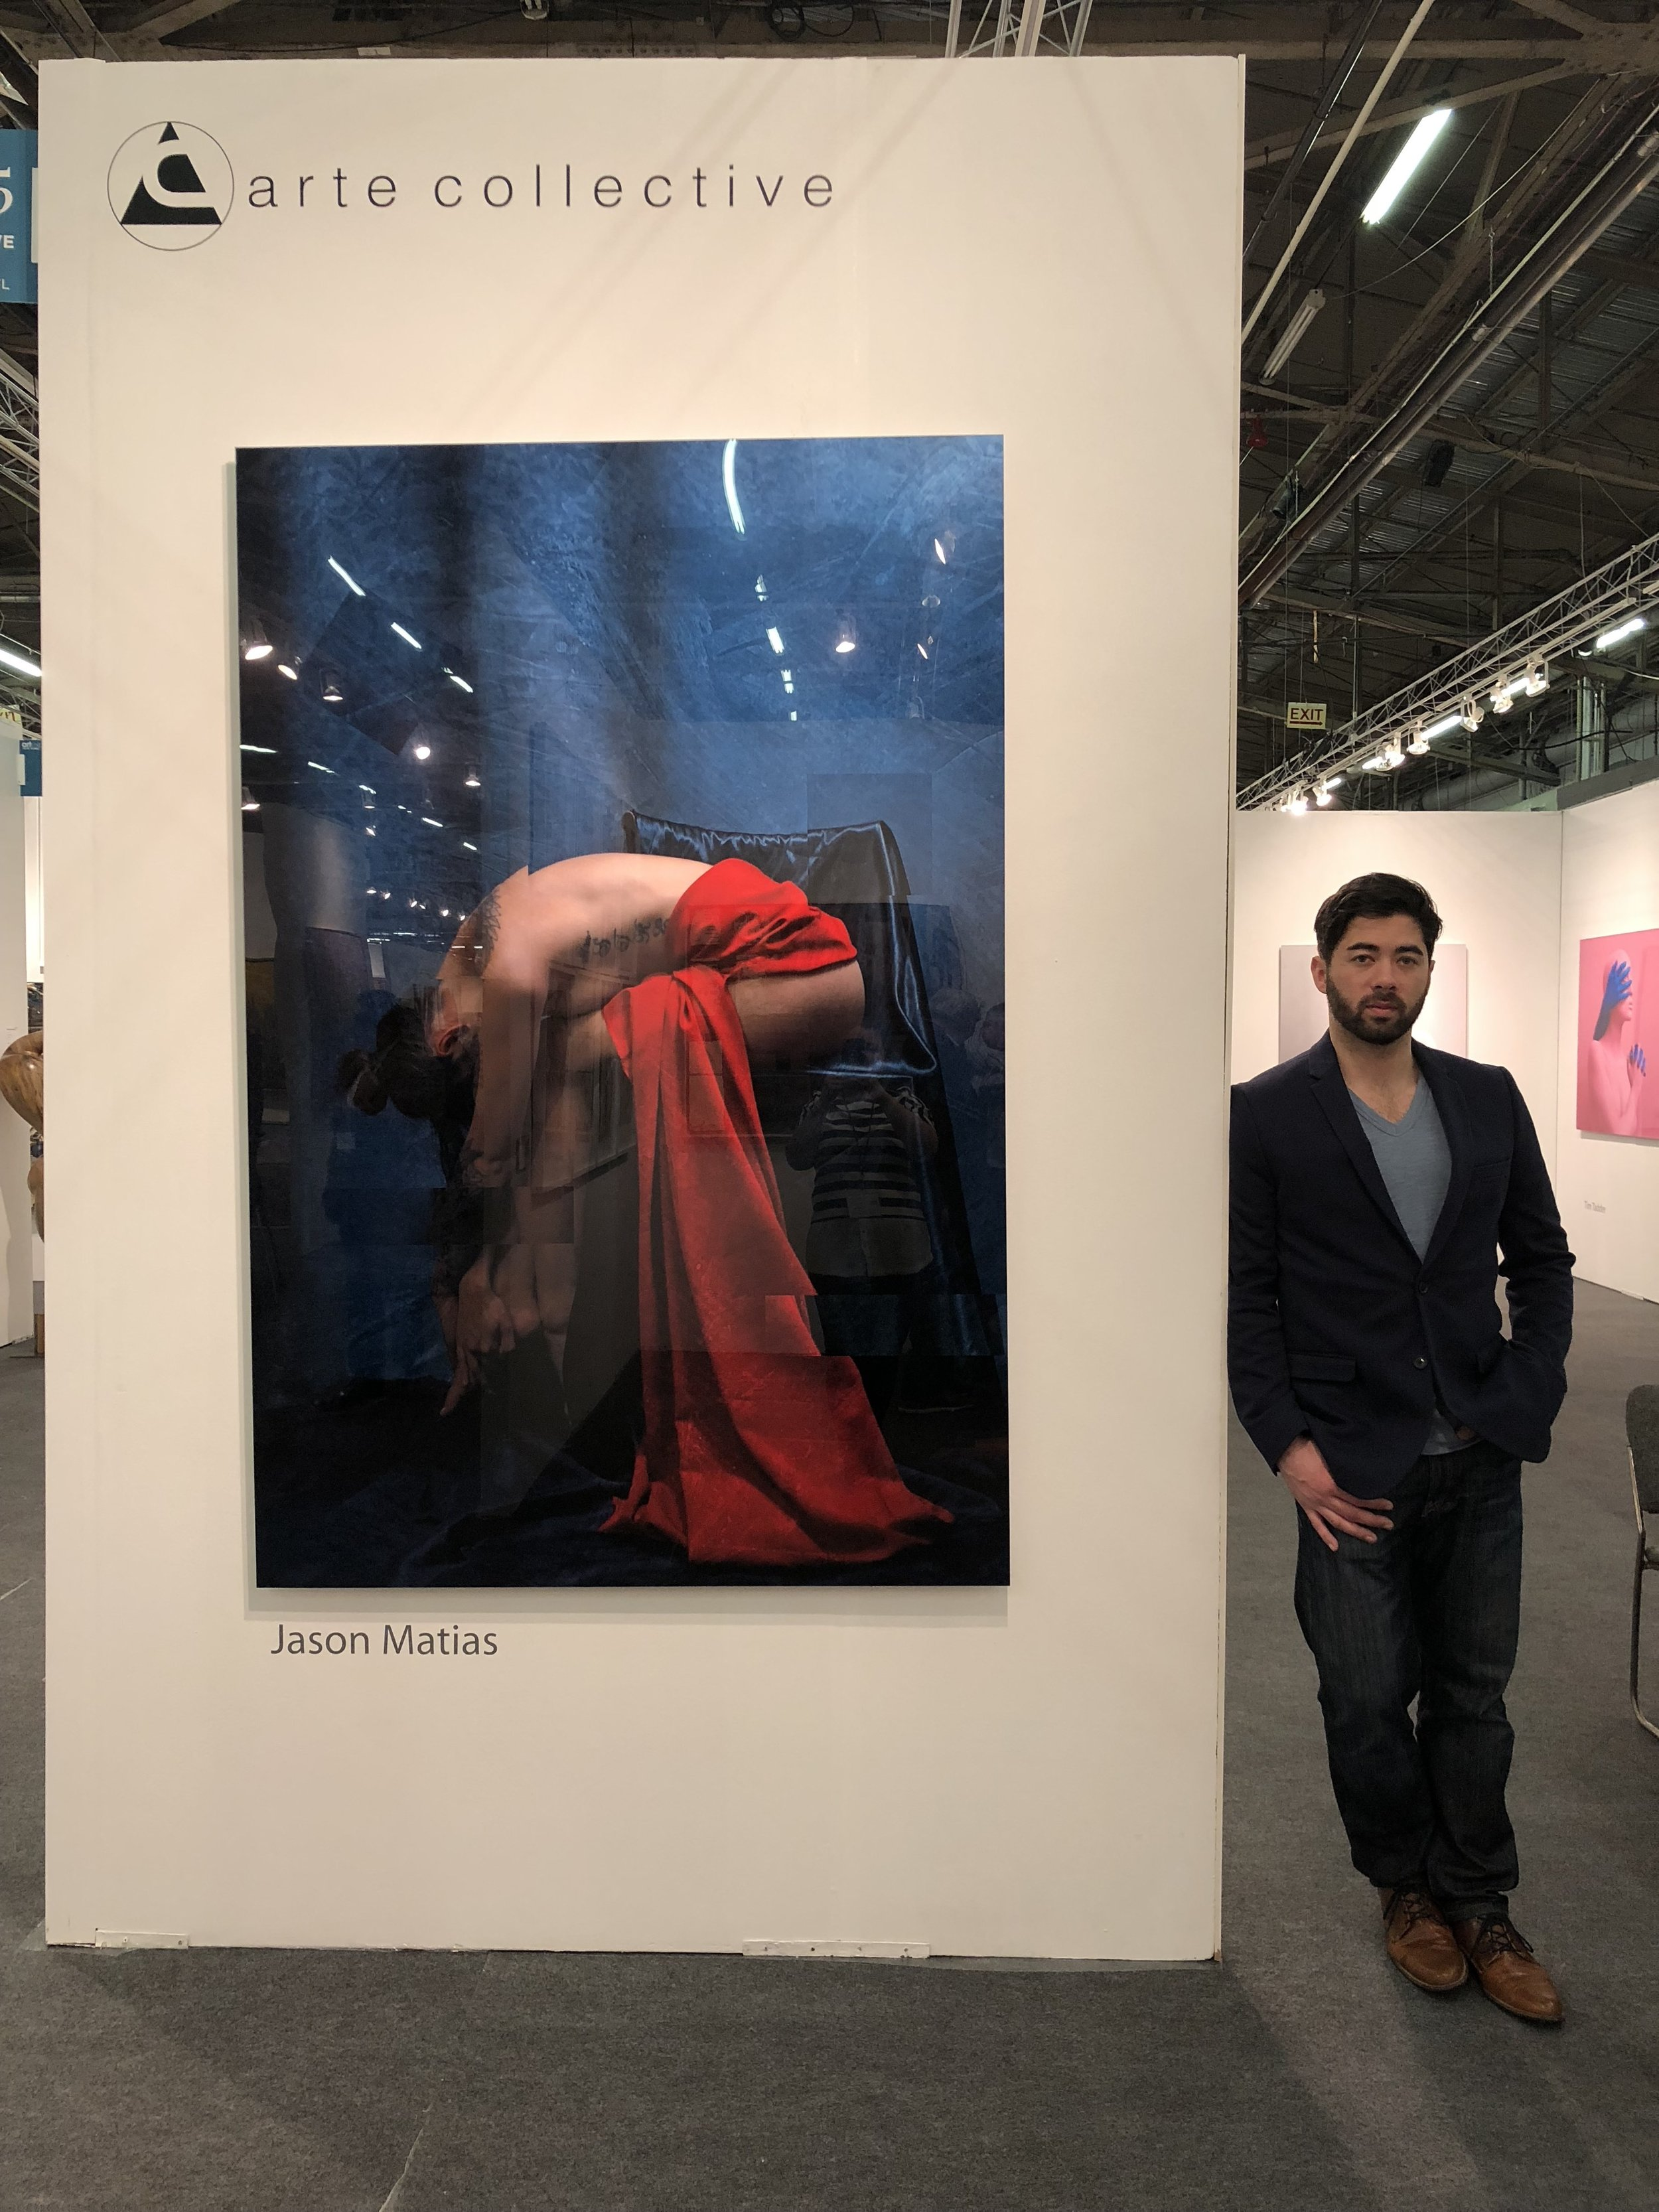 Jason Matias, artist, with Aria, the first nude in the collection.